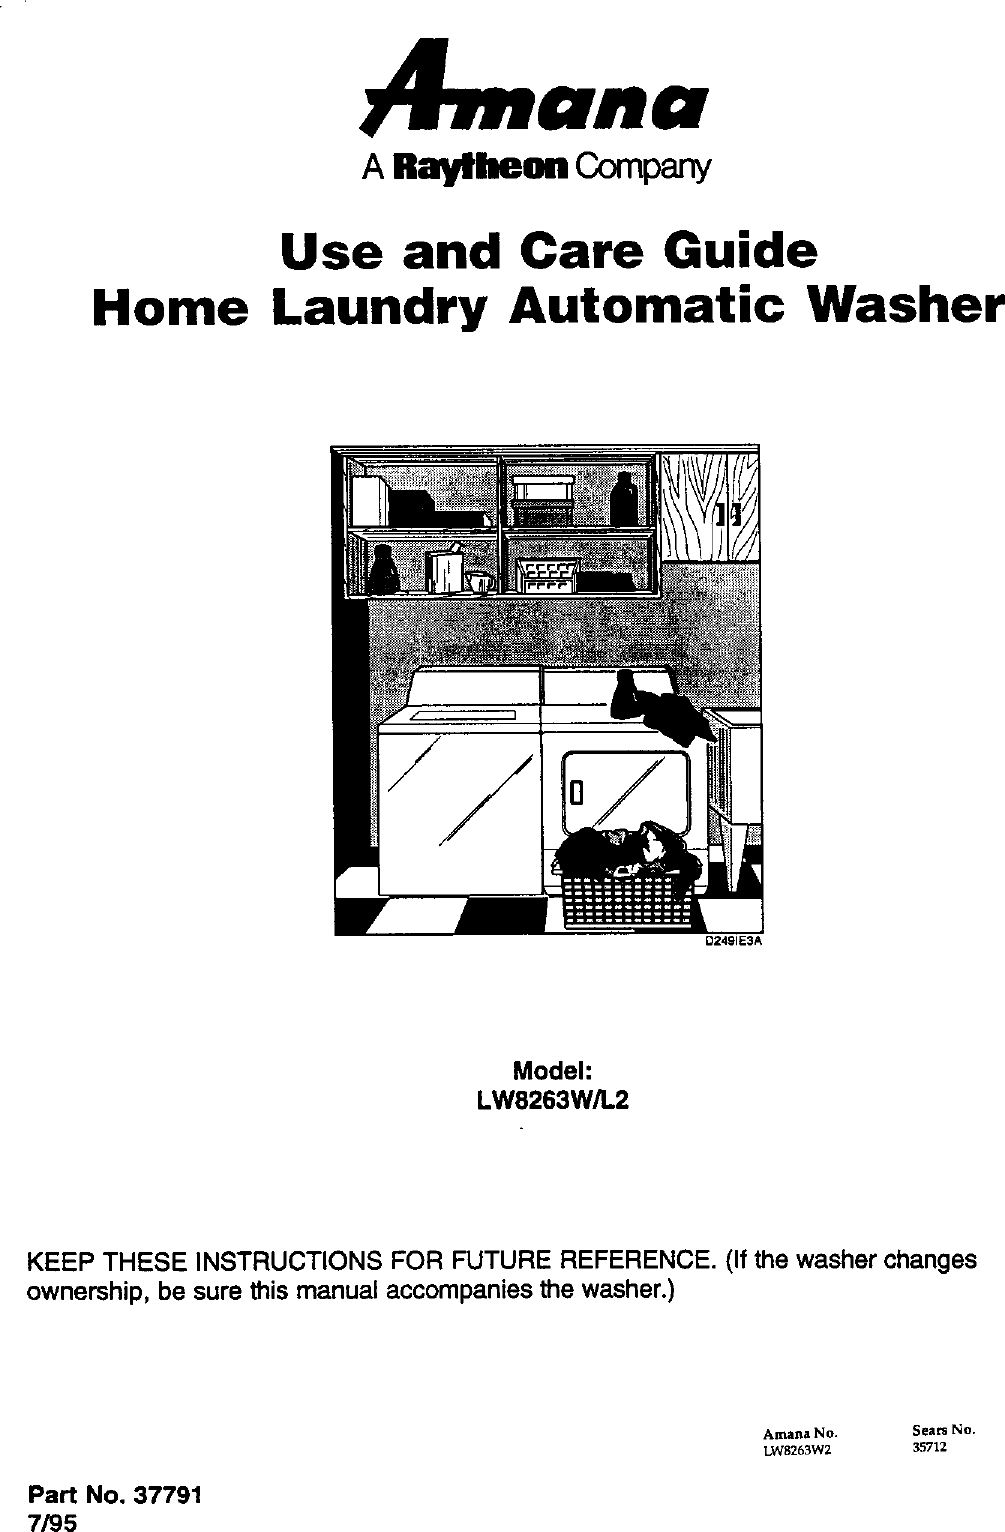 Amana Residential Washers Manual L0407326 Refrigerator Wiring Diagram On Oil Furnace Older